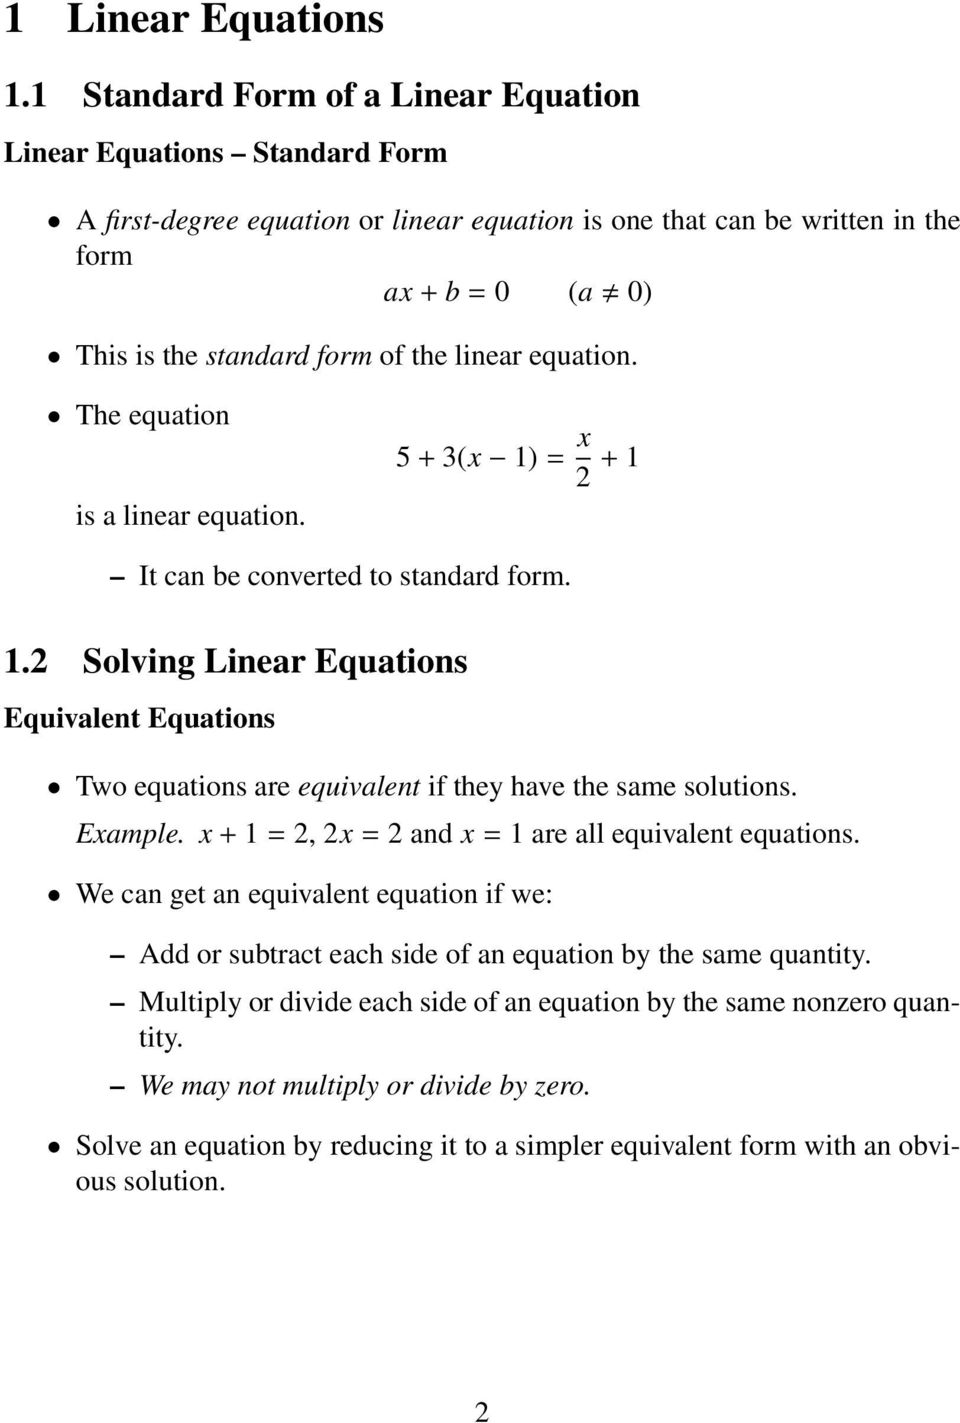 linear equation. The equation 5 + 3(x 1) = x 2 + 1 is a linear equation. It can be converted to standard form. 1.2 Solving Linear Equations Equivalent Equations Two equations are equivalent if they have the same solutions.